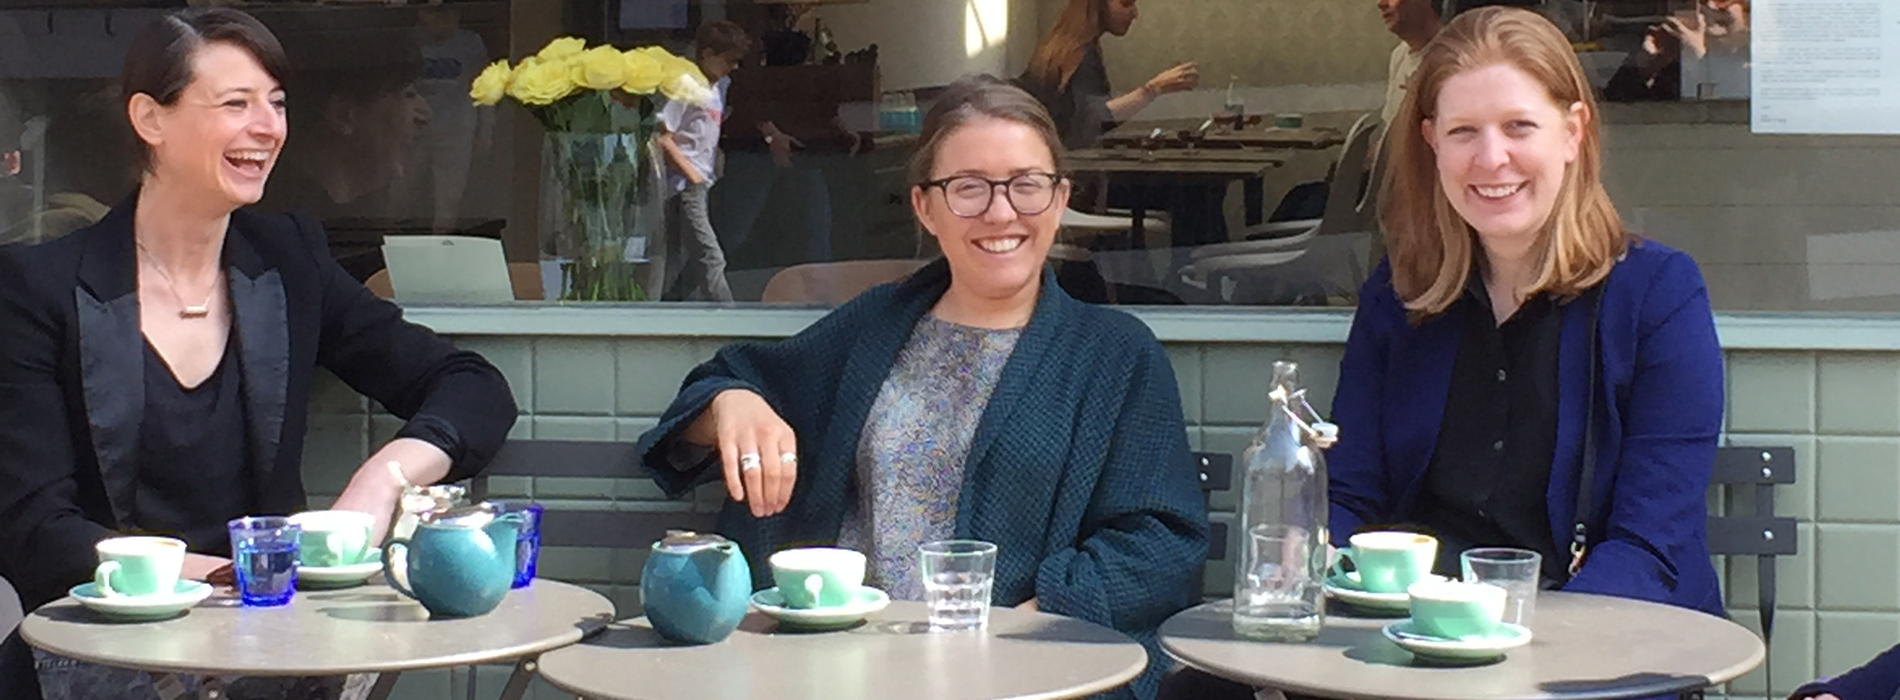 Image of three women enjoying a cup of coffee in a pavement cafe.